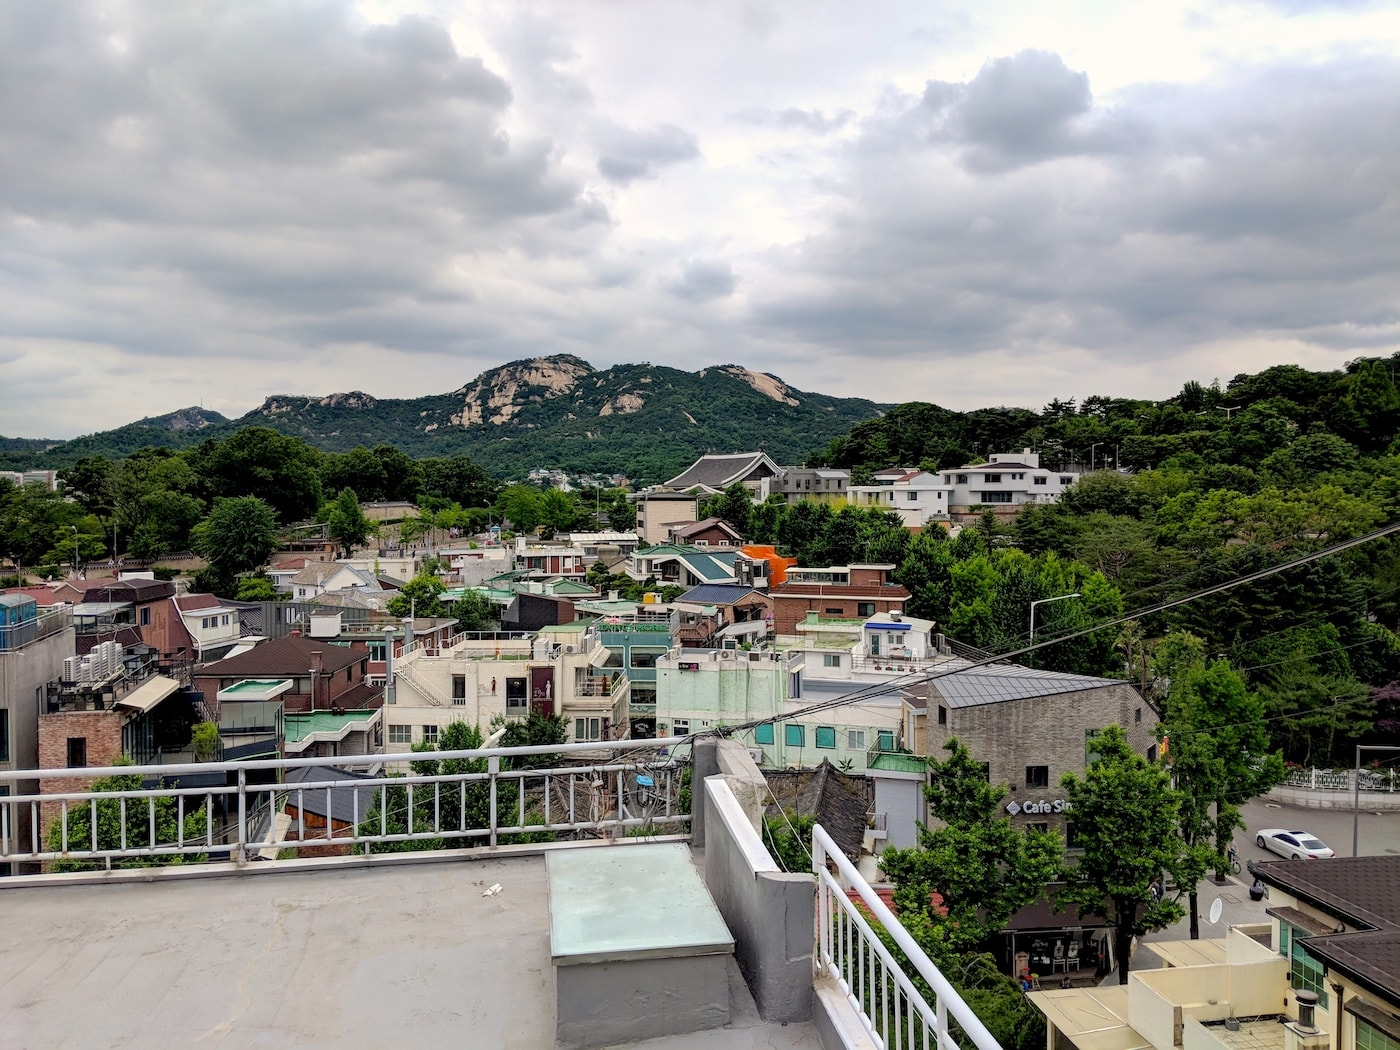 Small hills and valleys in the Korean landscape